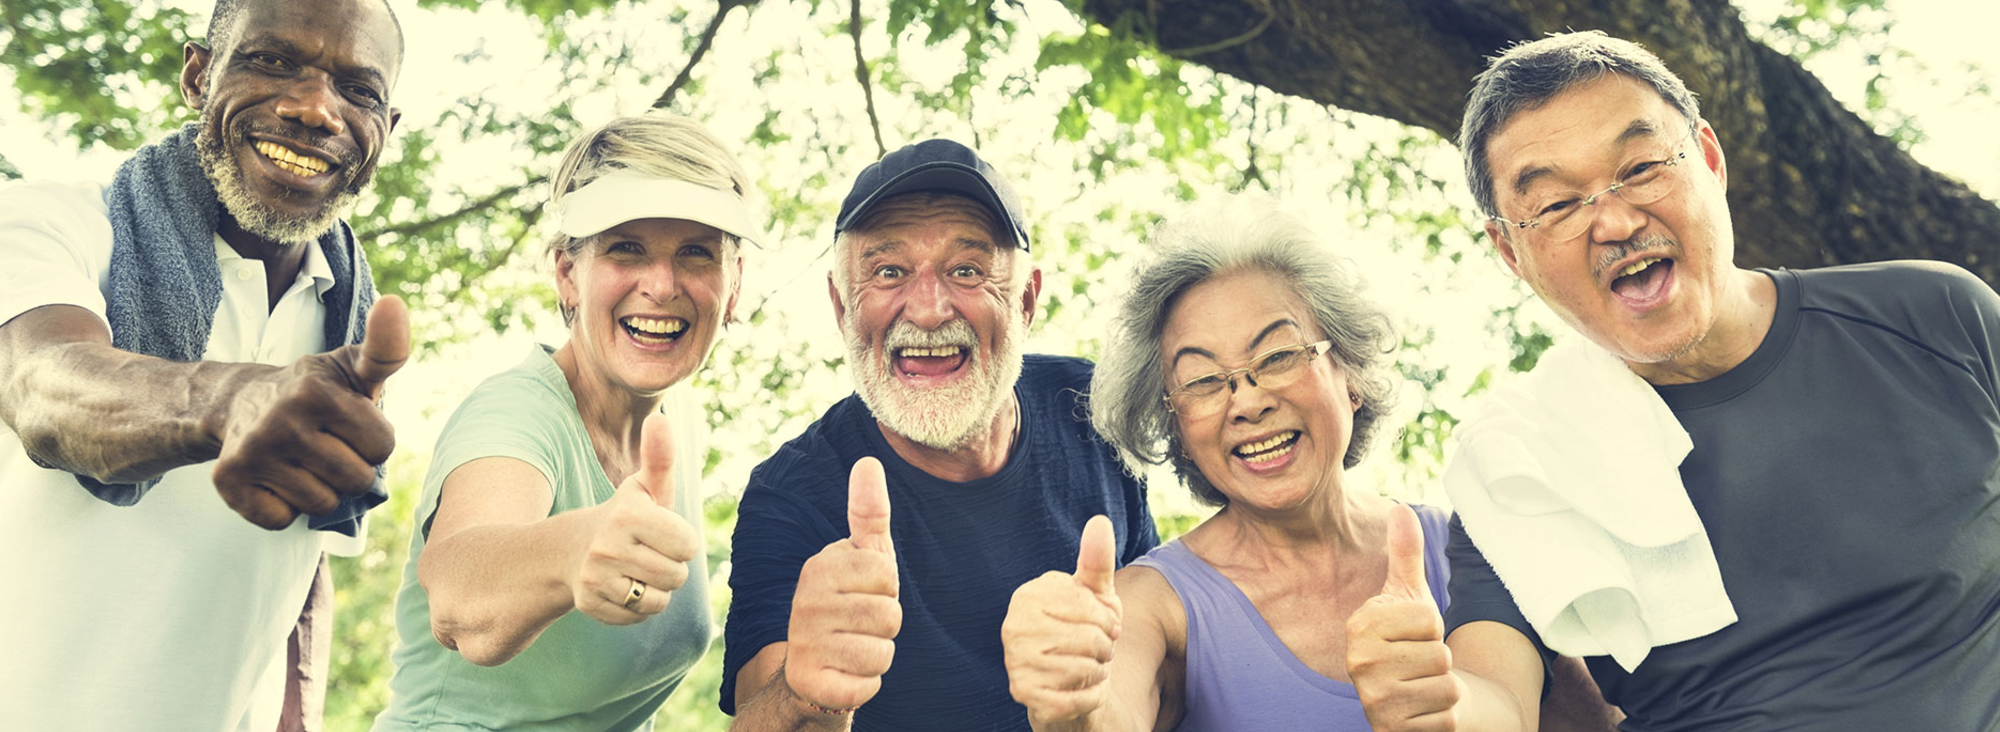 The Green Ages: Healing Senior Citizens with Natural Cannabis Medicines |  by Meadow | The Meadow Blog